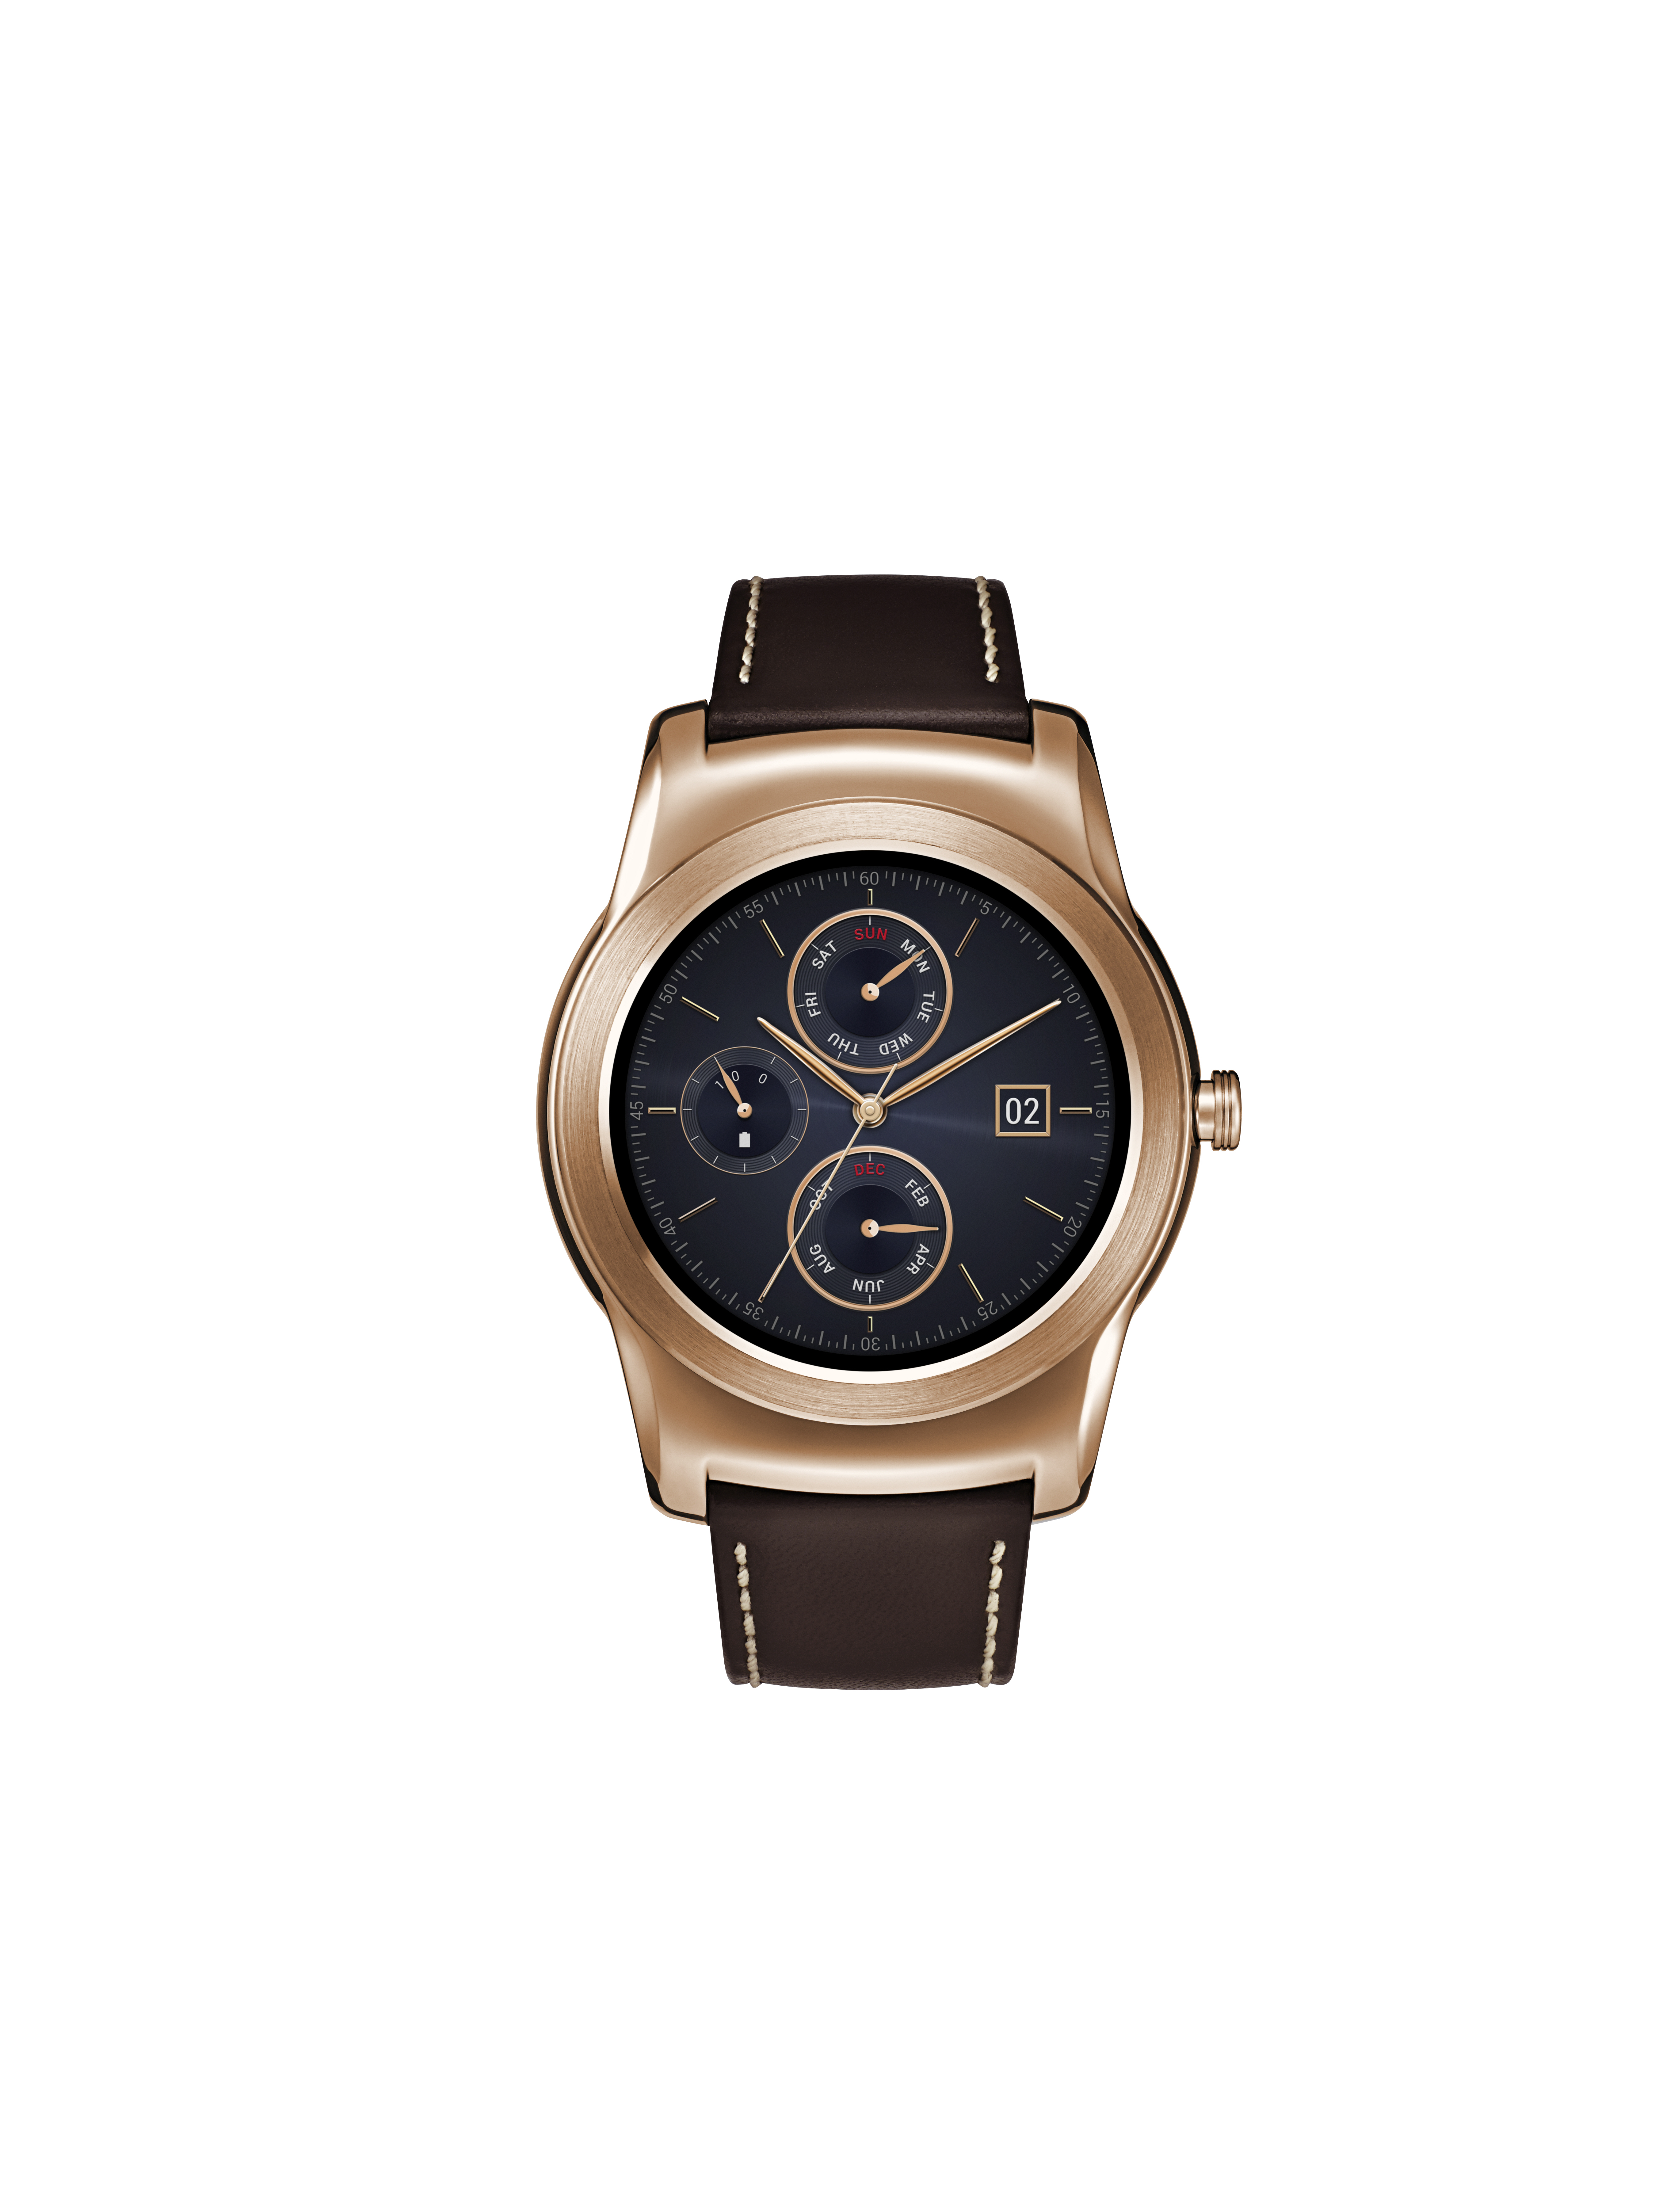 A front view of LG Watch Urbane in gold color.